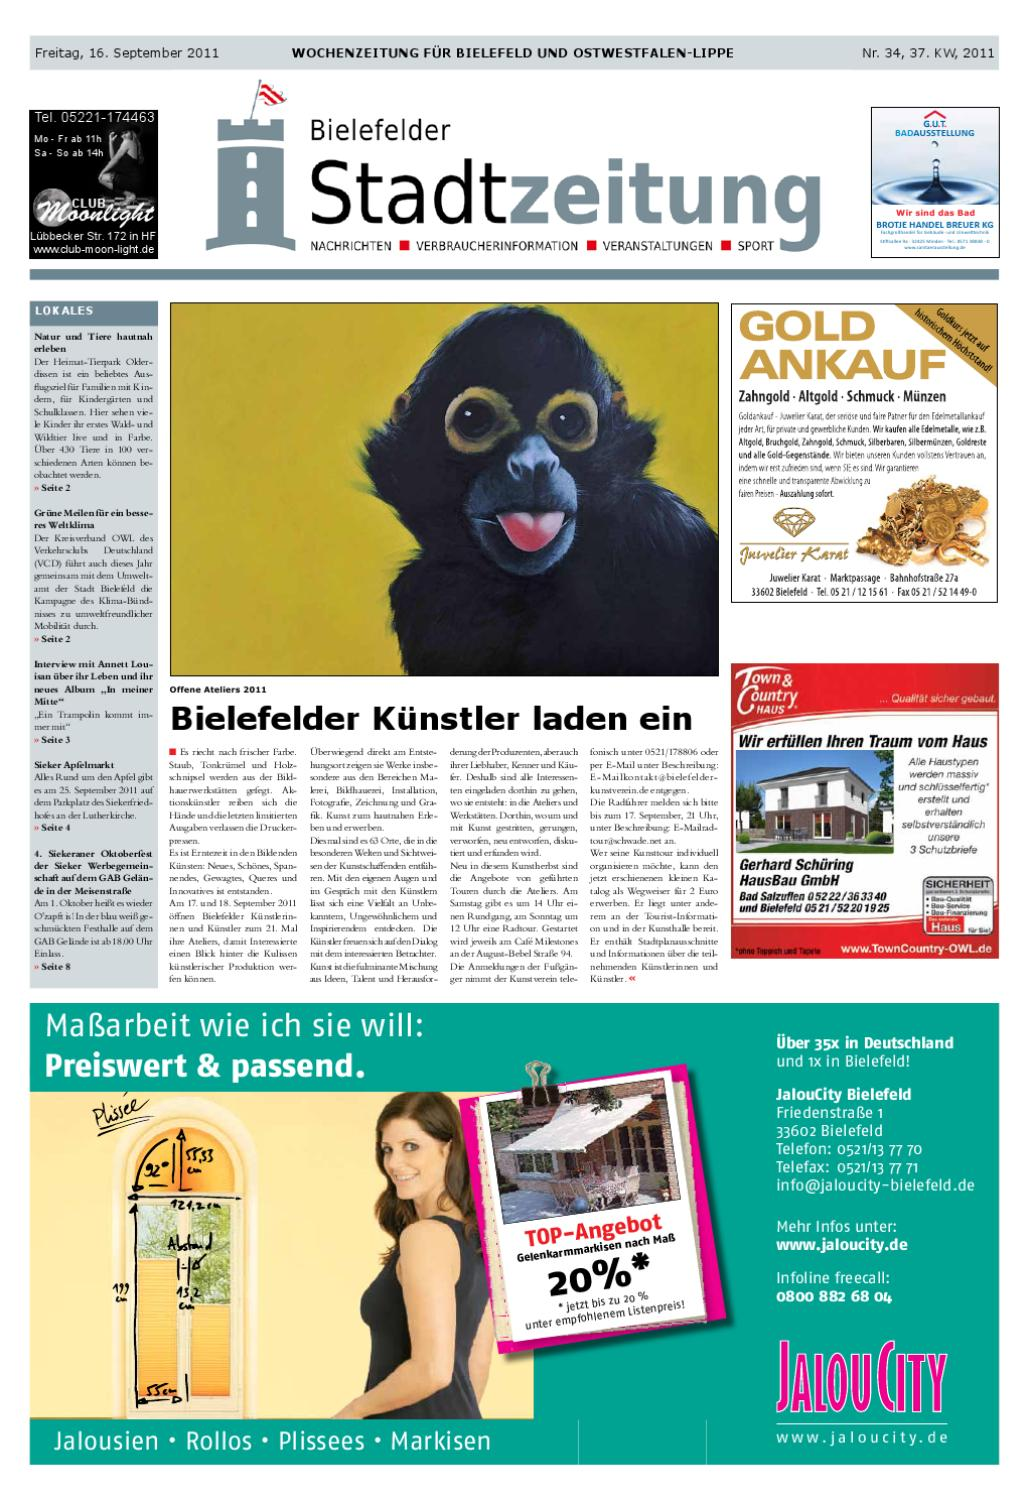 34 bielefelder stadtzeitung by jess man issuu. Black Bedroom Furniture Sets. Home Design Ideas